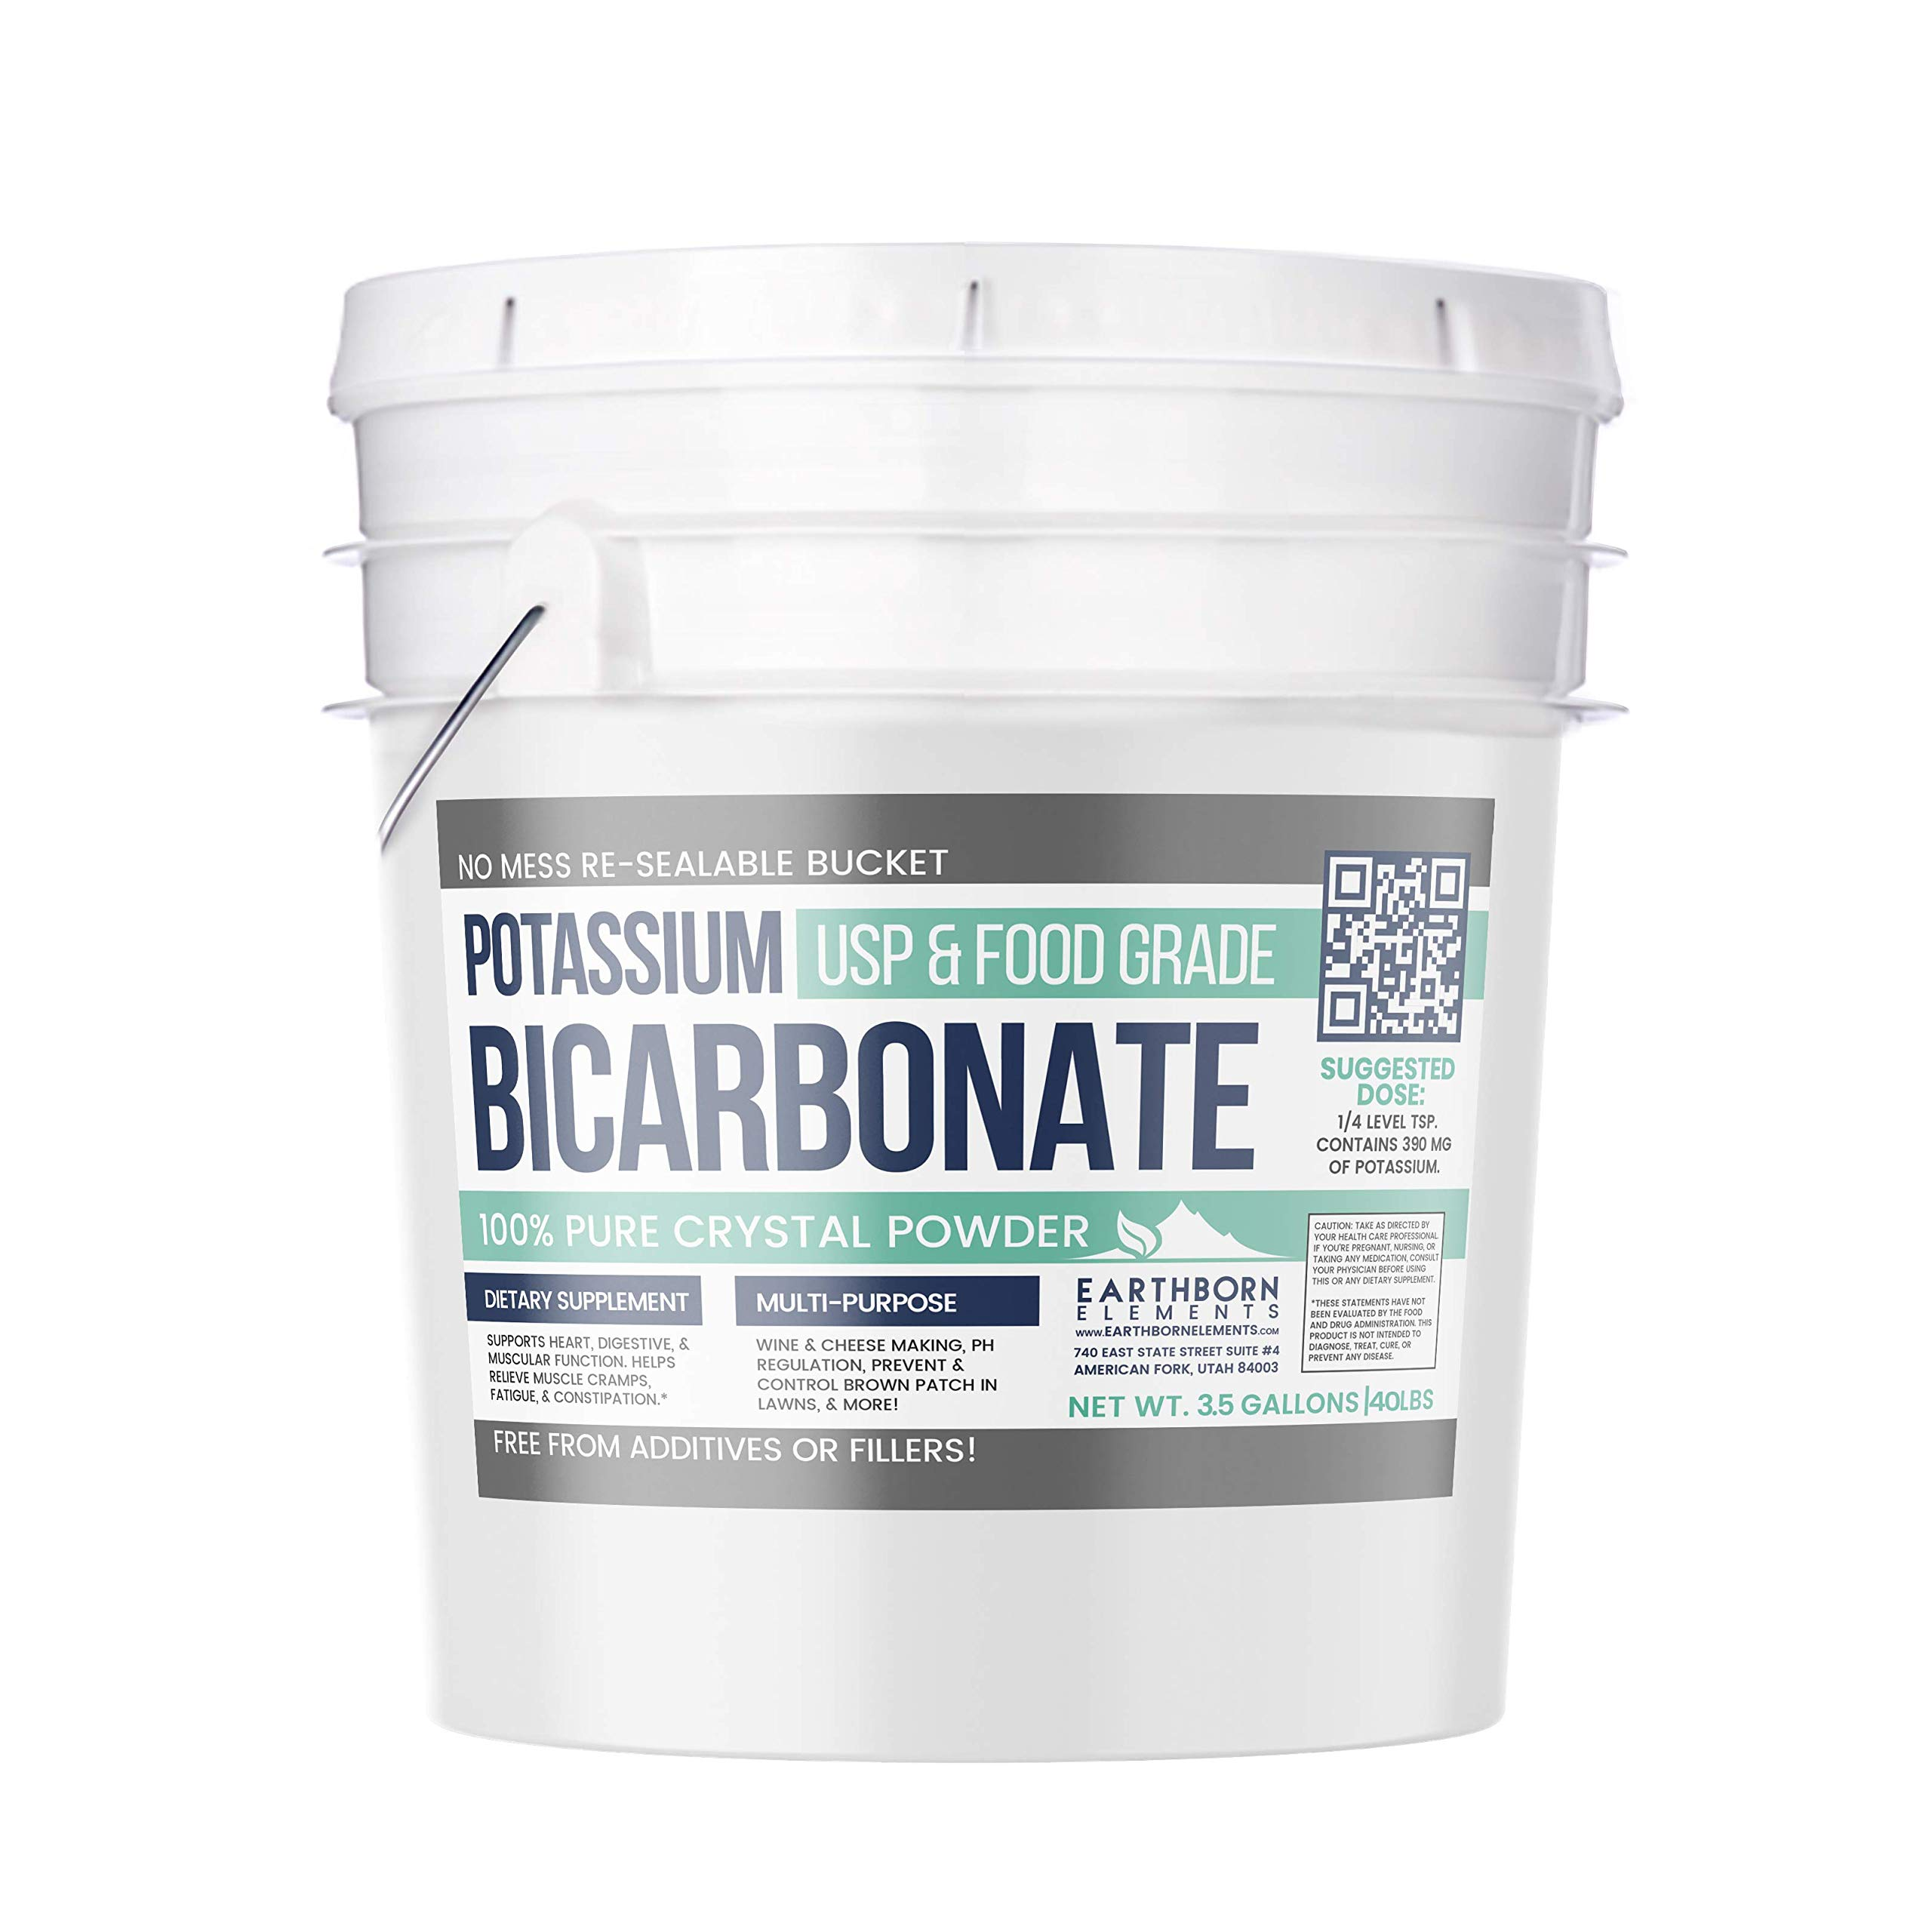 Potassium Bicarbonate (3.5 Gallon, 40 lbs.) by Earthborn Elements, Resealable Bucket, Highest Purity, Food and USP Pharmaceutical Grade